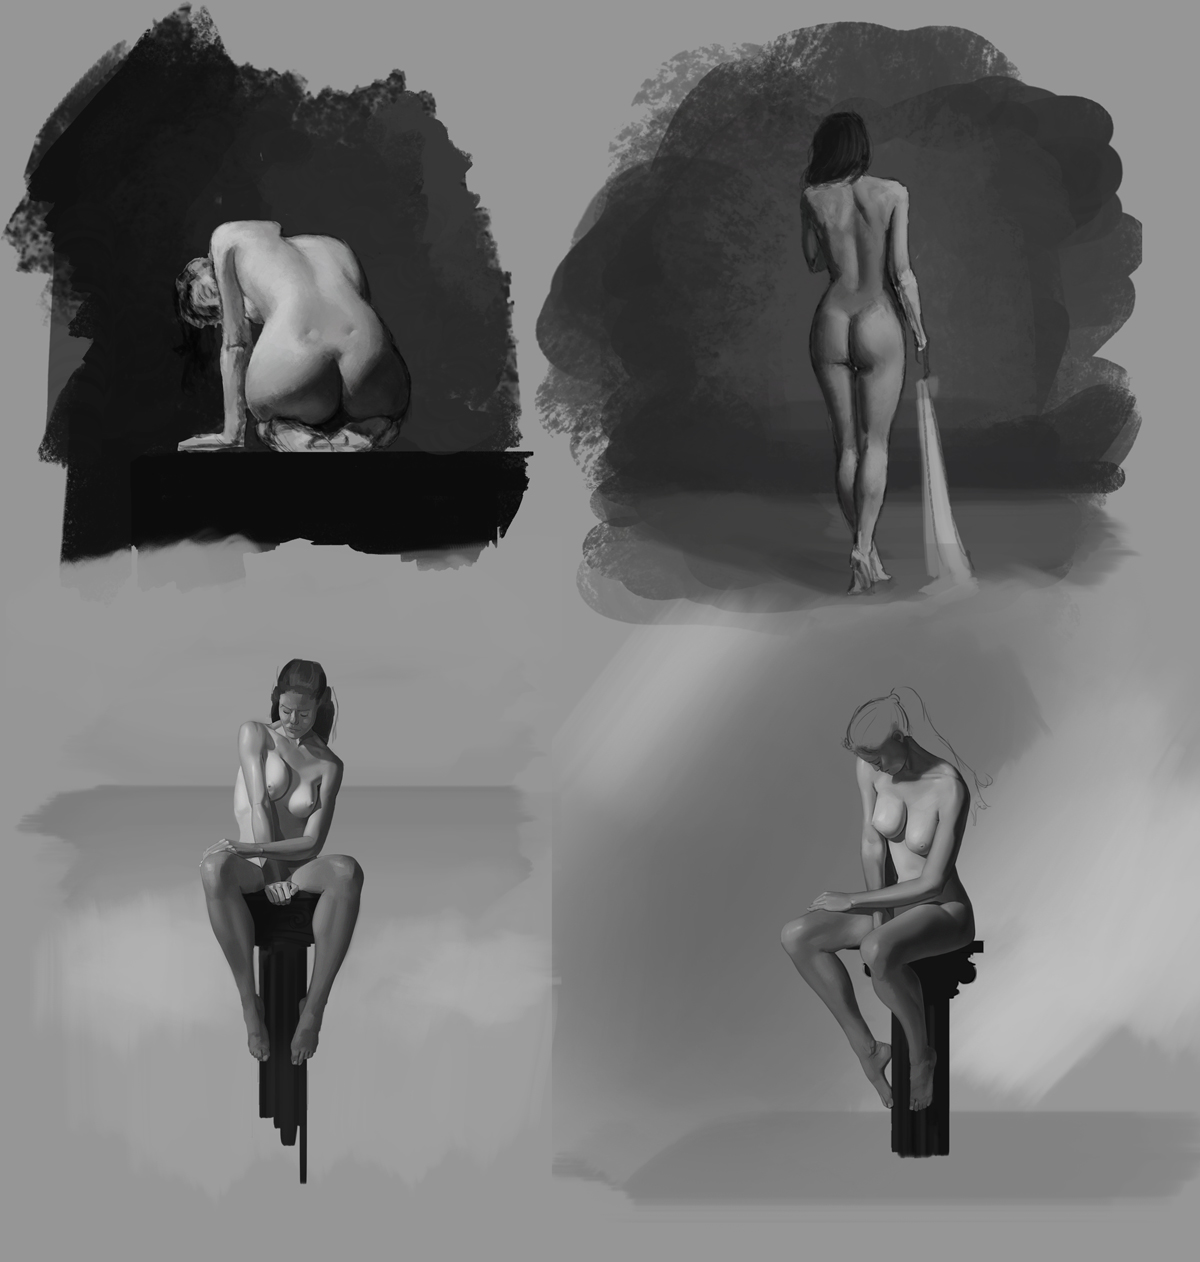 skin/anatomy studies